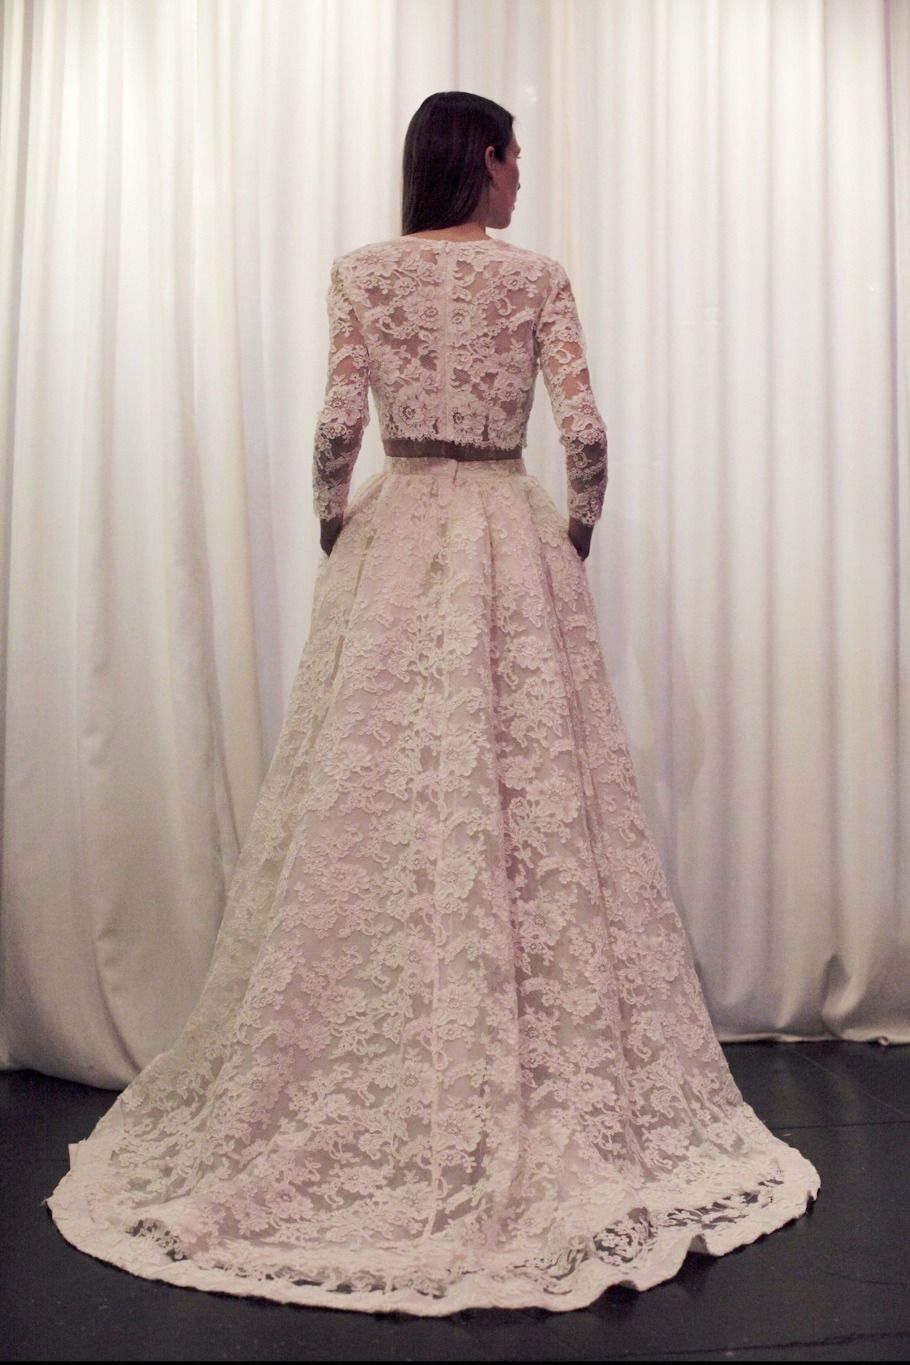 Lace separates gorgeous love i just love wedding dresses